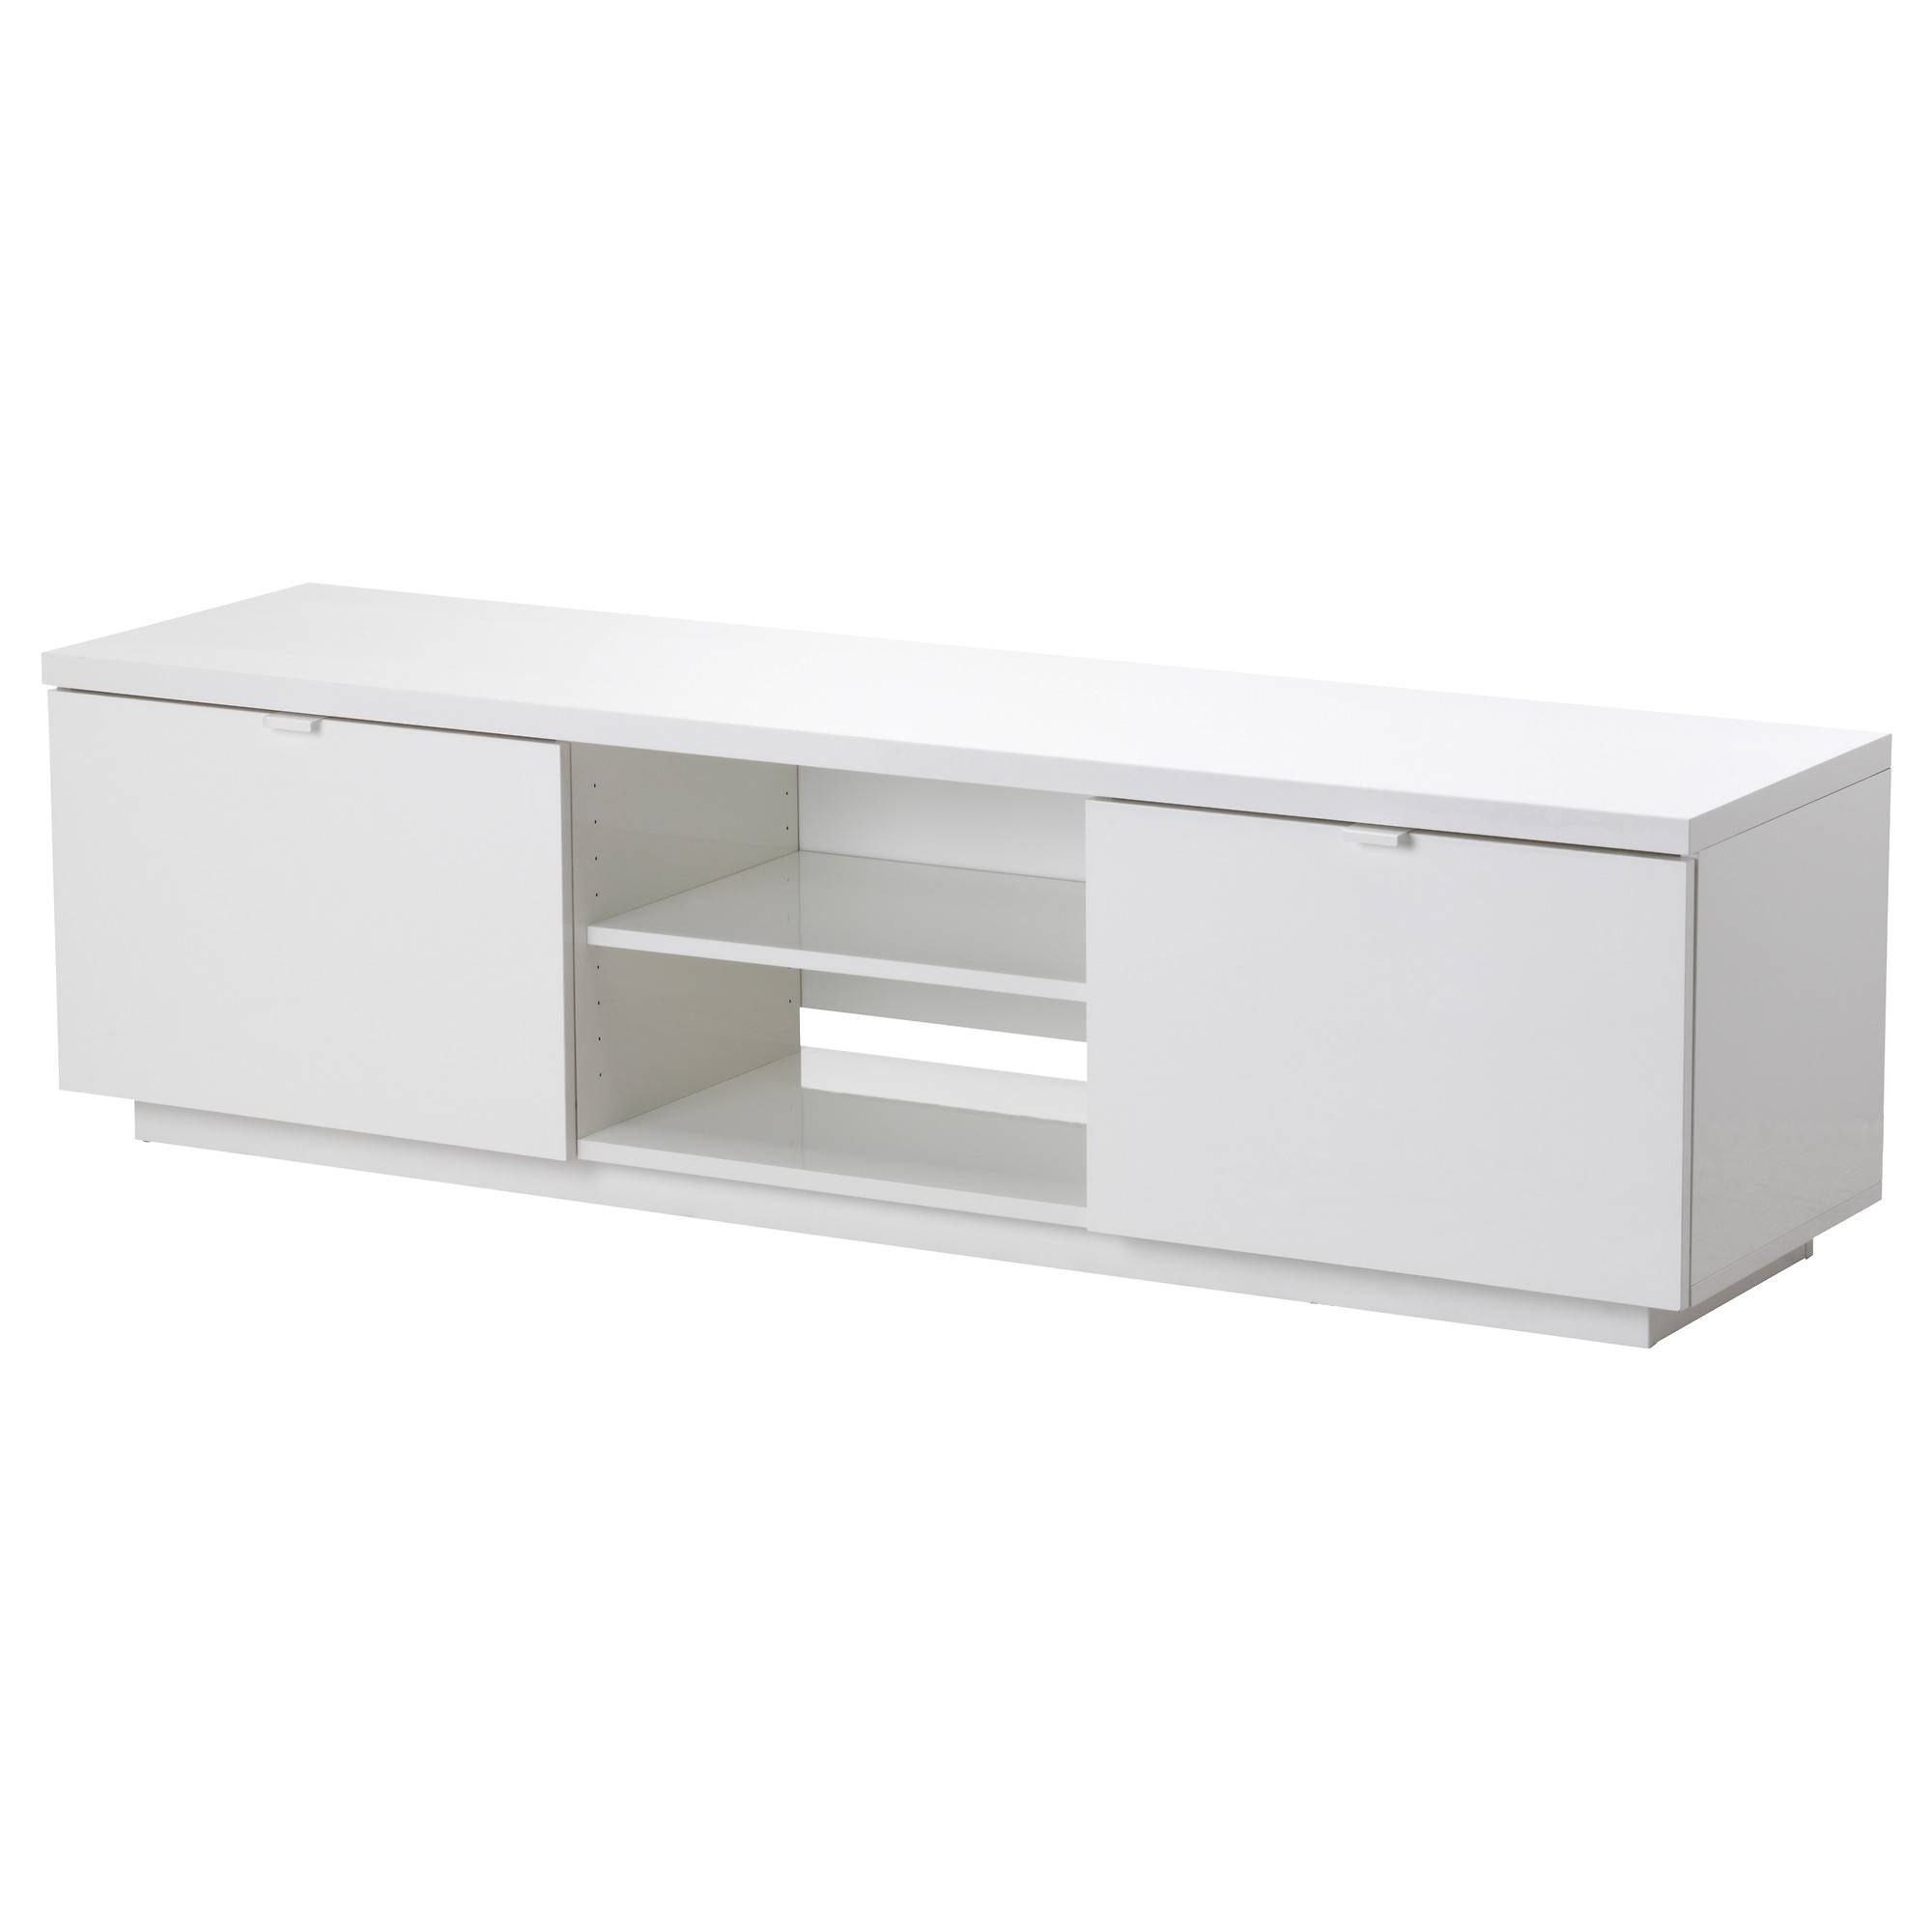 Byås Tv Unit – Ikea Throughout Recent White Gloss Ikea Sideboards (View 9 of 15)